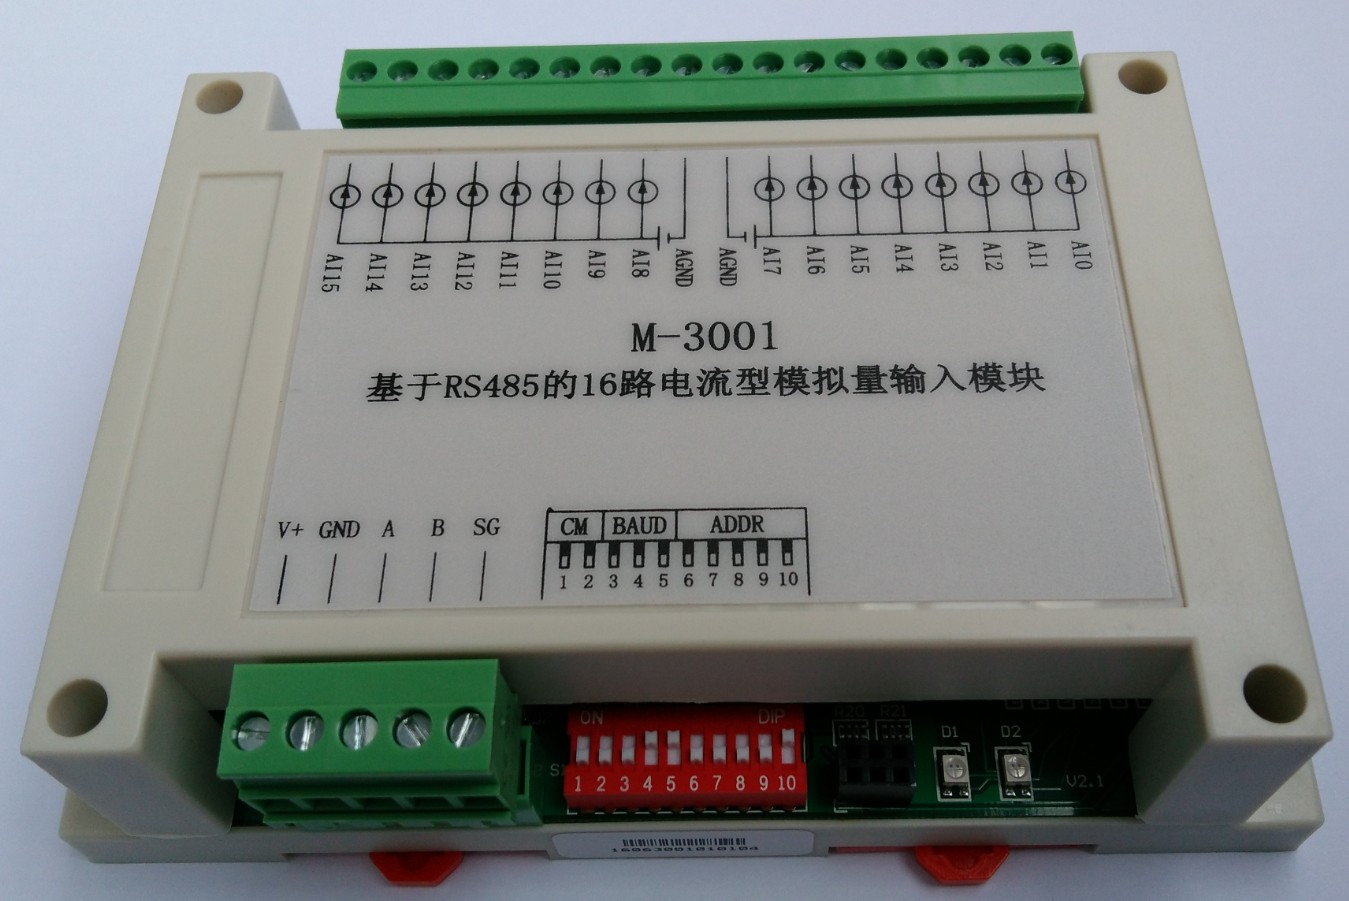 PLC Extension Module RS485 Bus Communication ADC Acquisition Board Card 16 Channel Analog Input AI Module isa bus multi functiondata acquisition board pcl 836